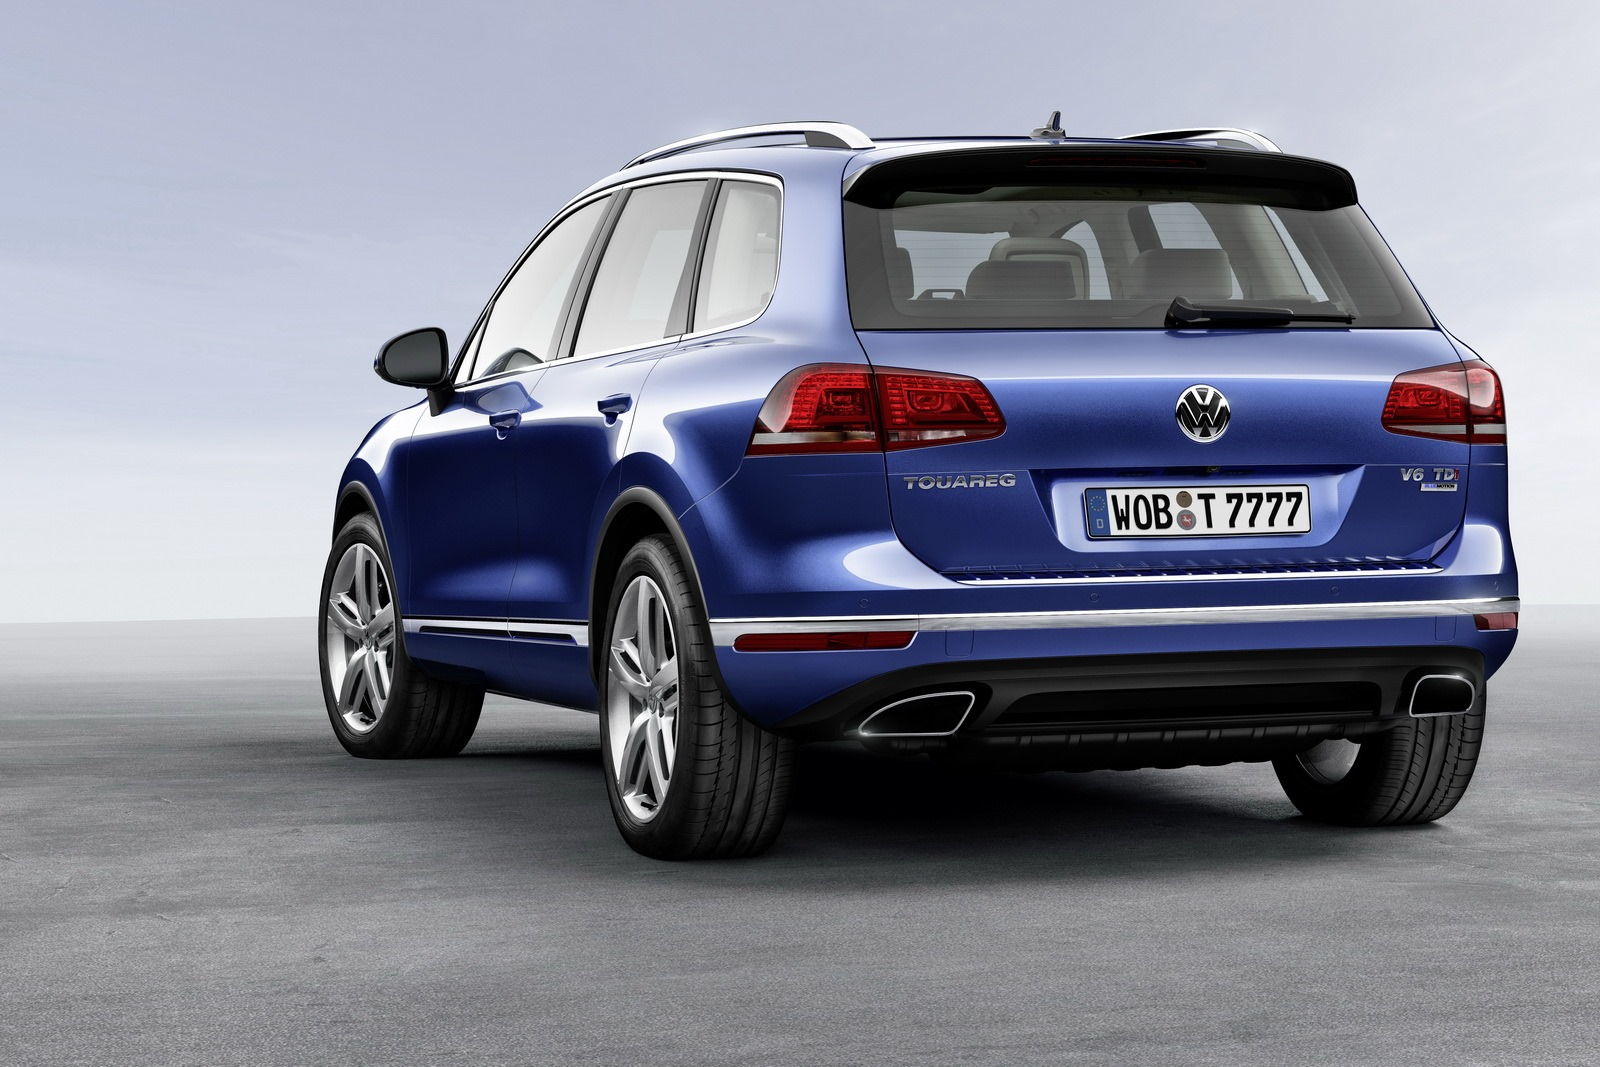 New Volkswagen Touareg Launched In Germany With Tdi And